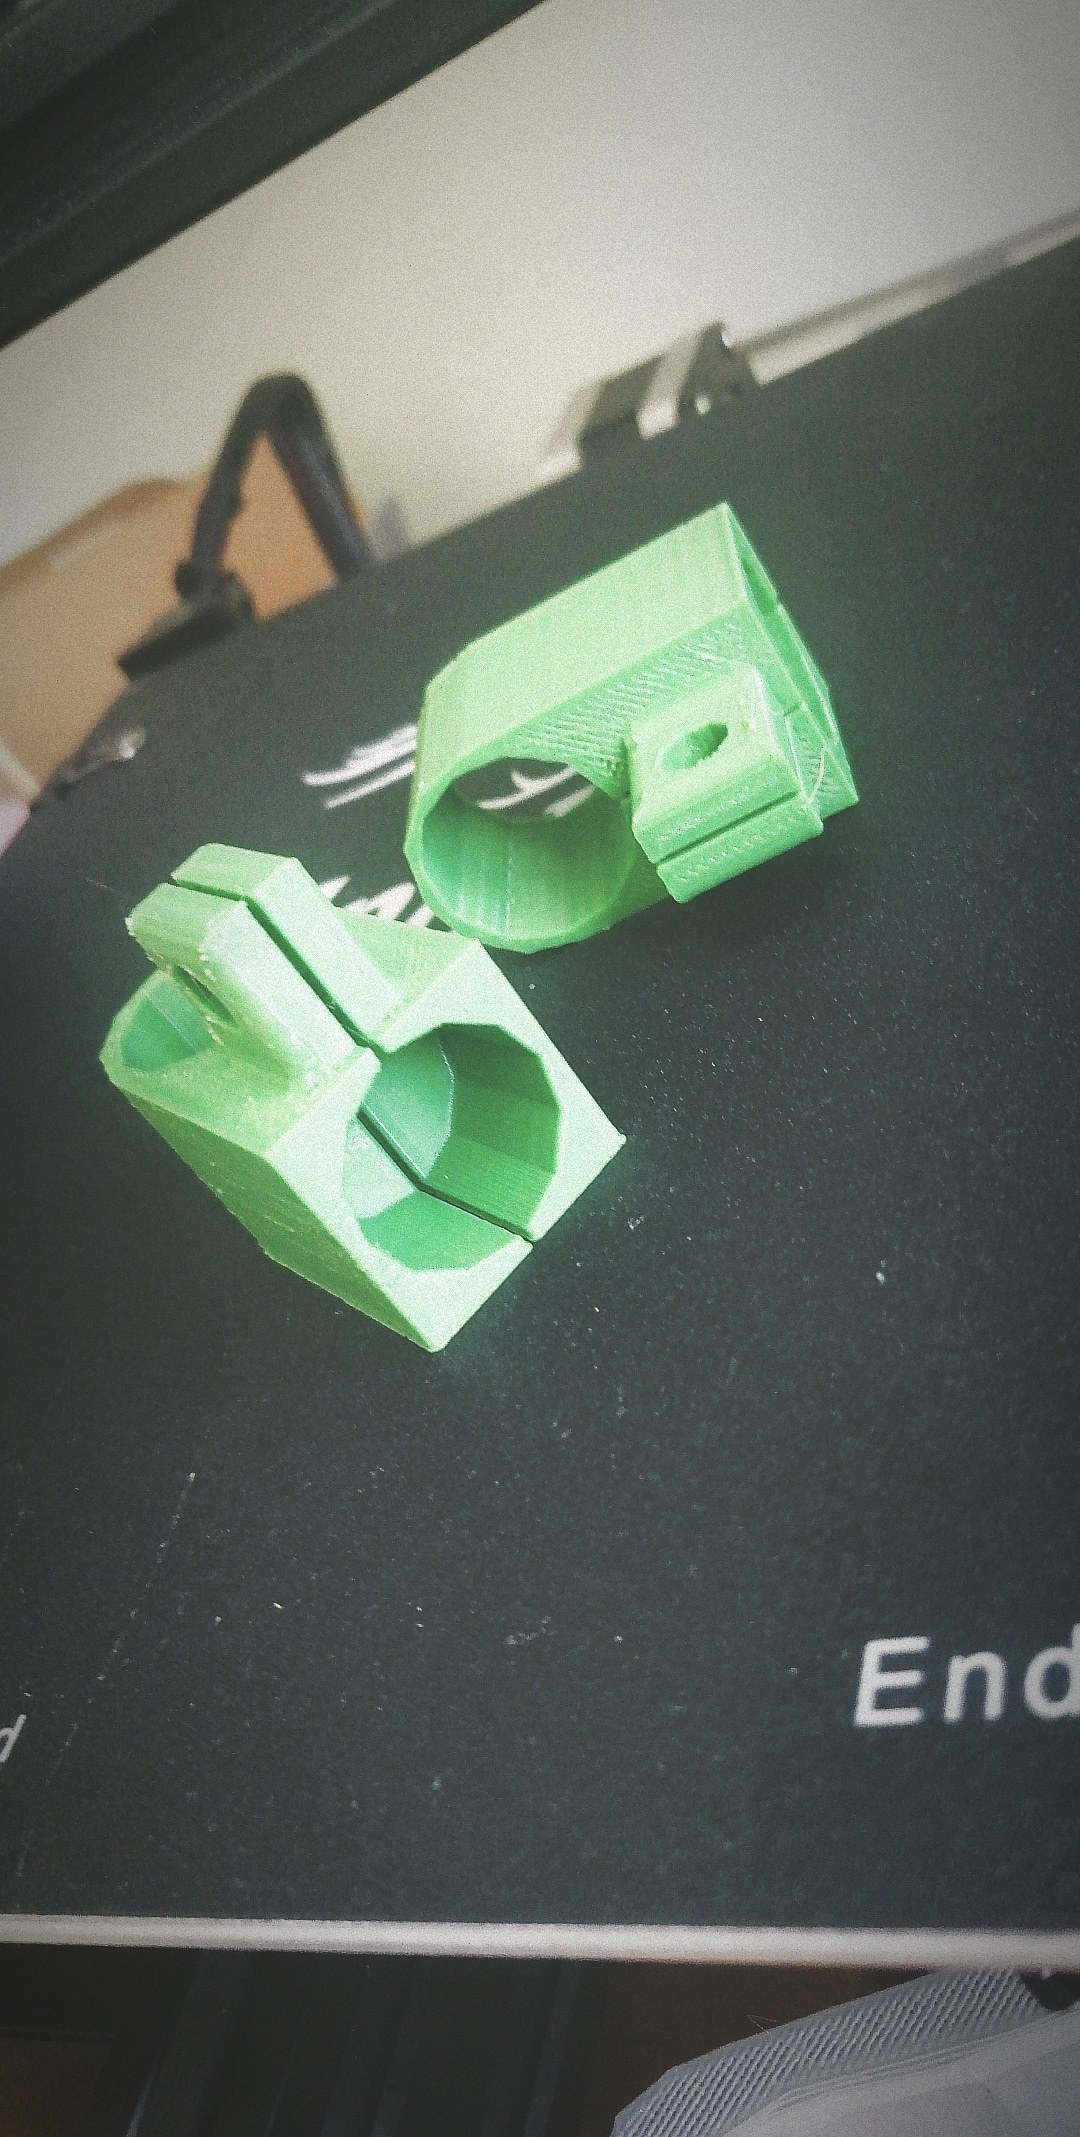 IMG_20190917_112958_695.jpg Download free STL file Pipe joints for National Police Circuit • 3D printing object, Ginesor